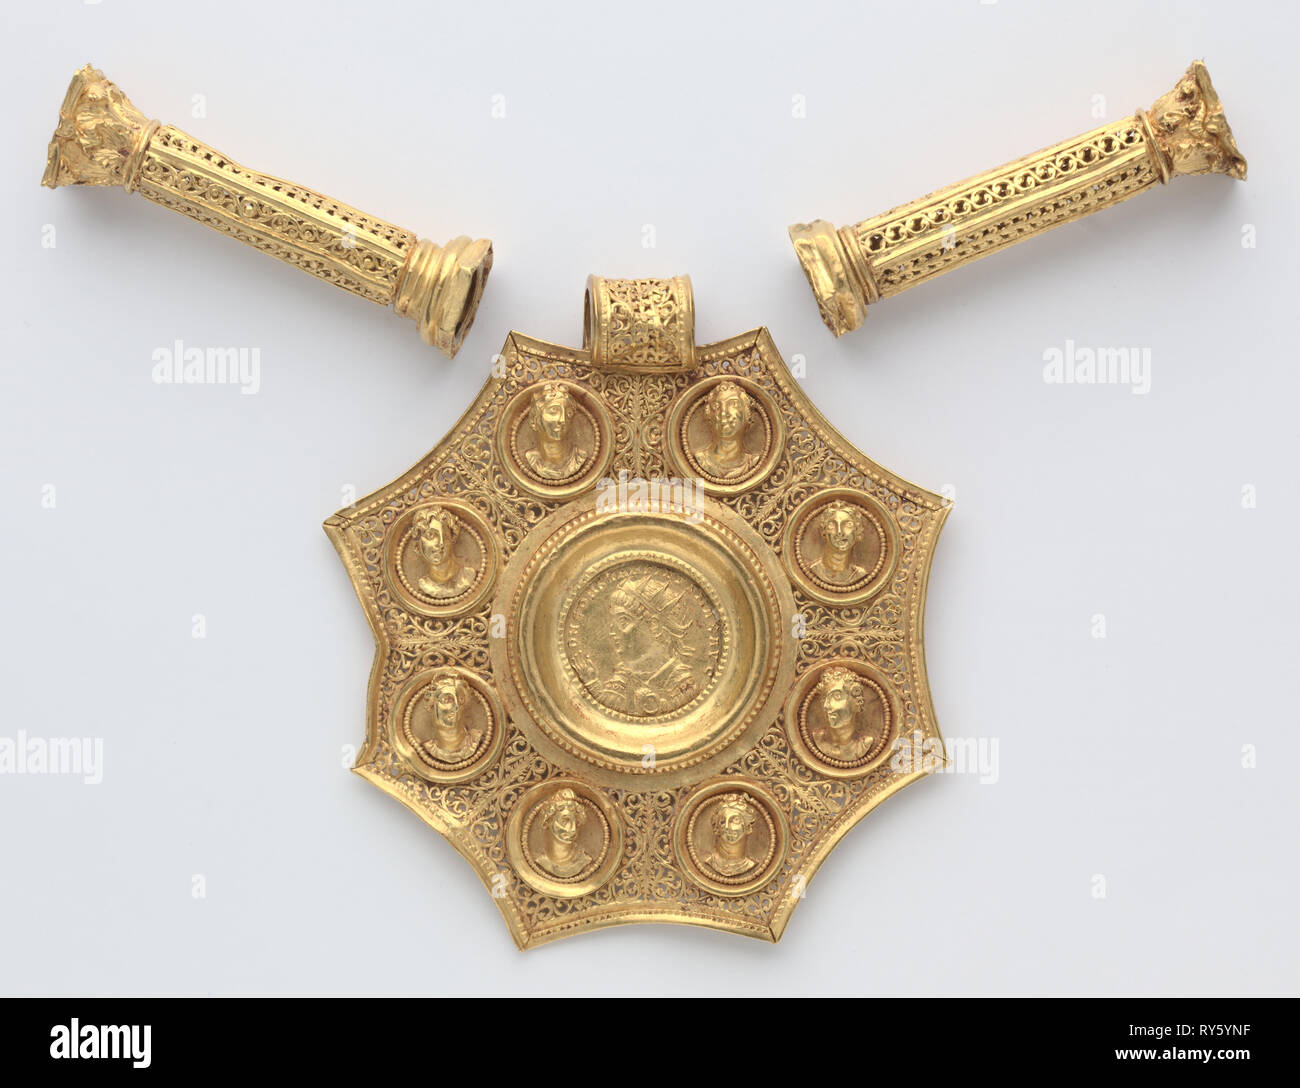 Octagonal Pendant with Corinthian Column Spacers and Clasp Set, 324-326. Byzantium, Late Roman, Eastern Mediterranean, (probably Sirium or Nicomedia), Byzantine period. Gold - Stock Image